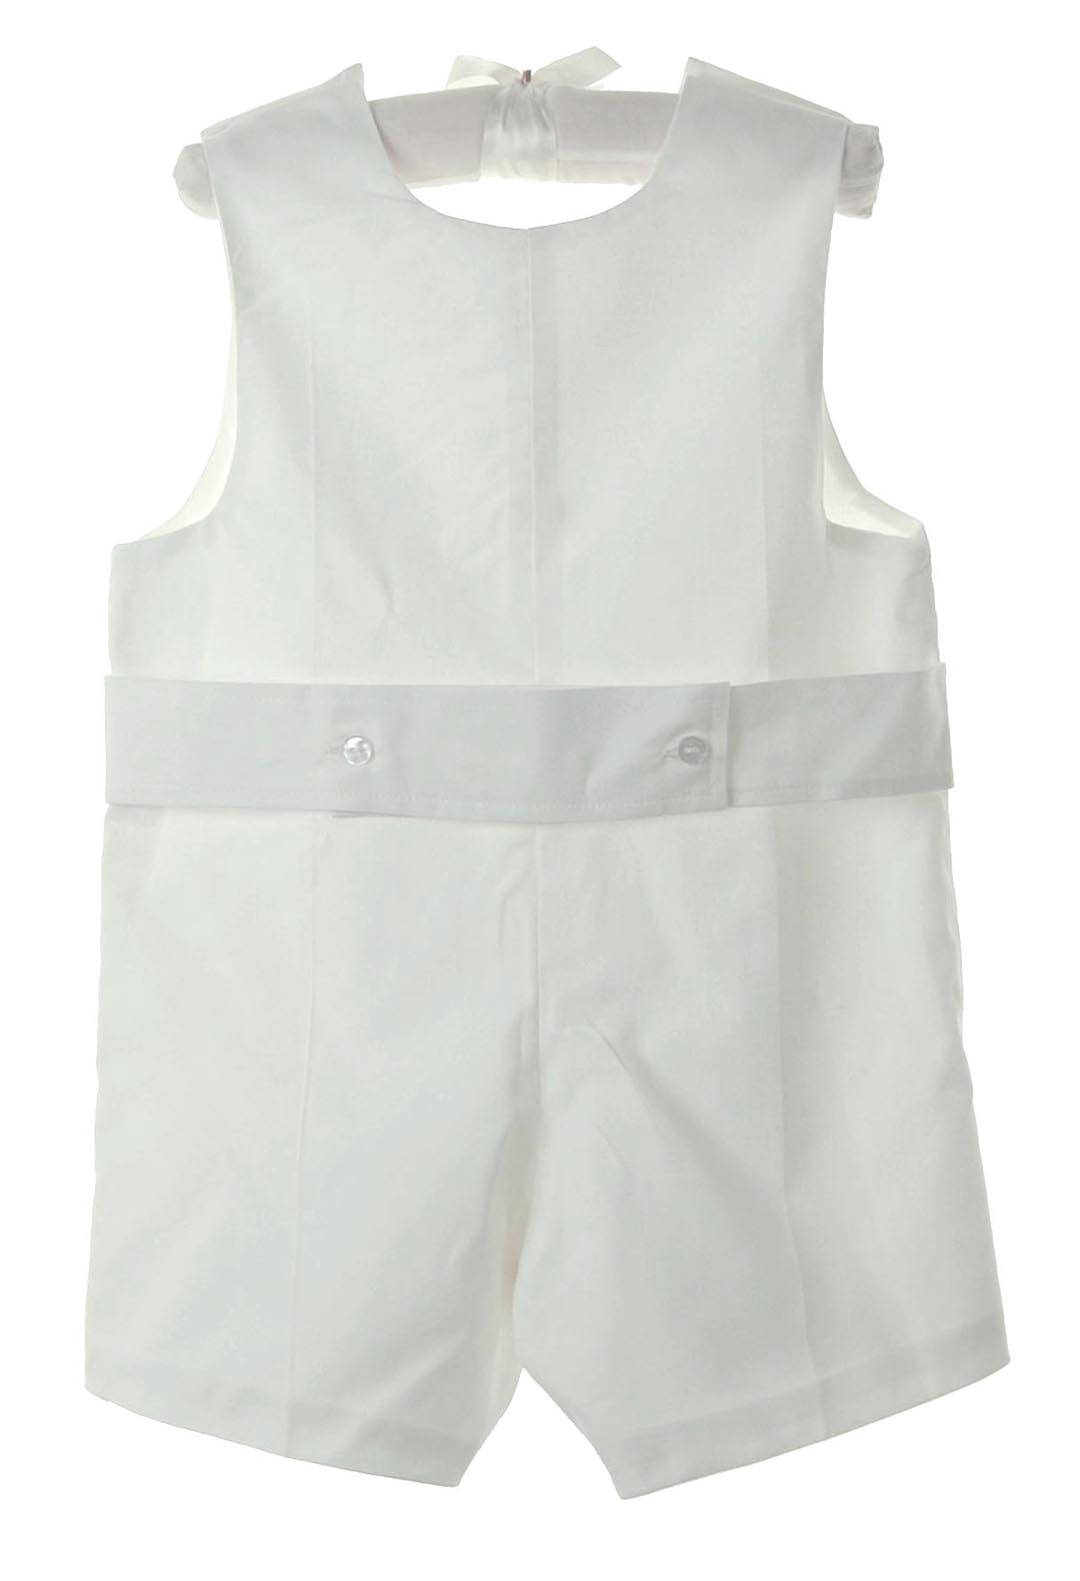 3a97c76a88 NEW Lavender Blue White Cotton Shortall with Back Belt